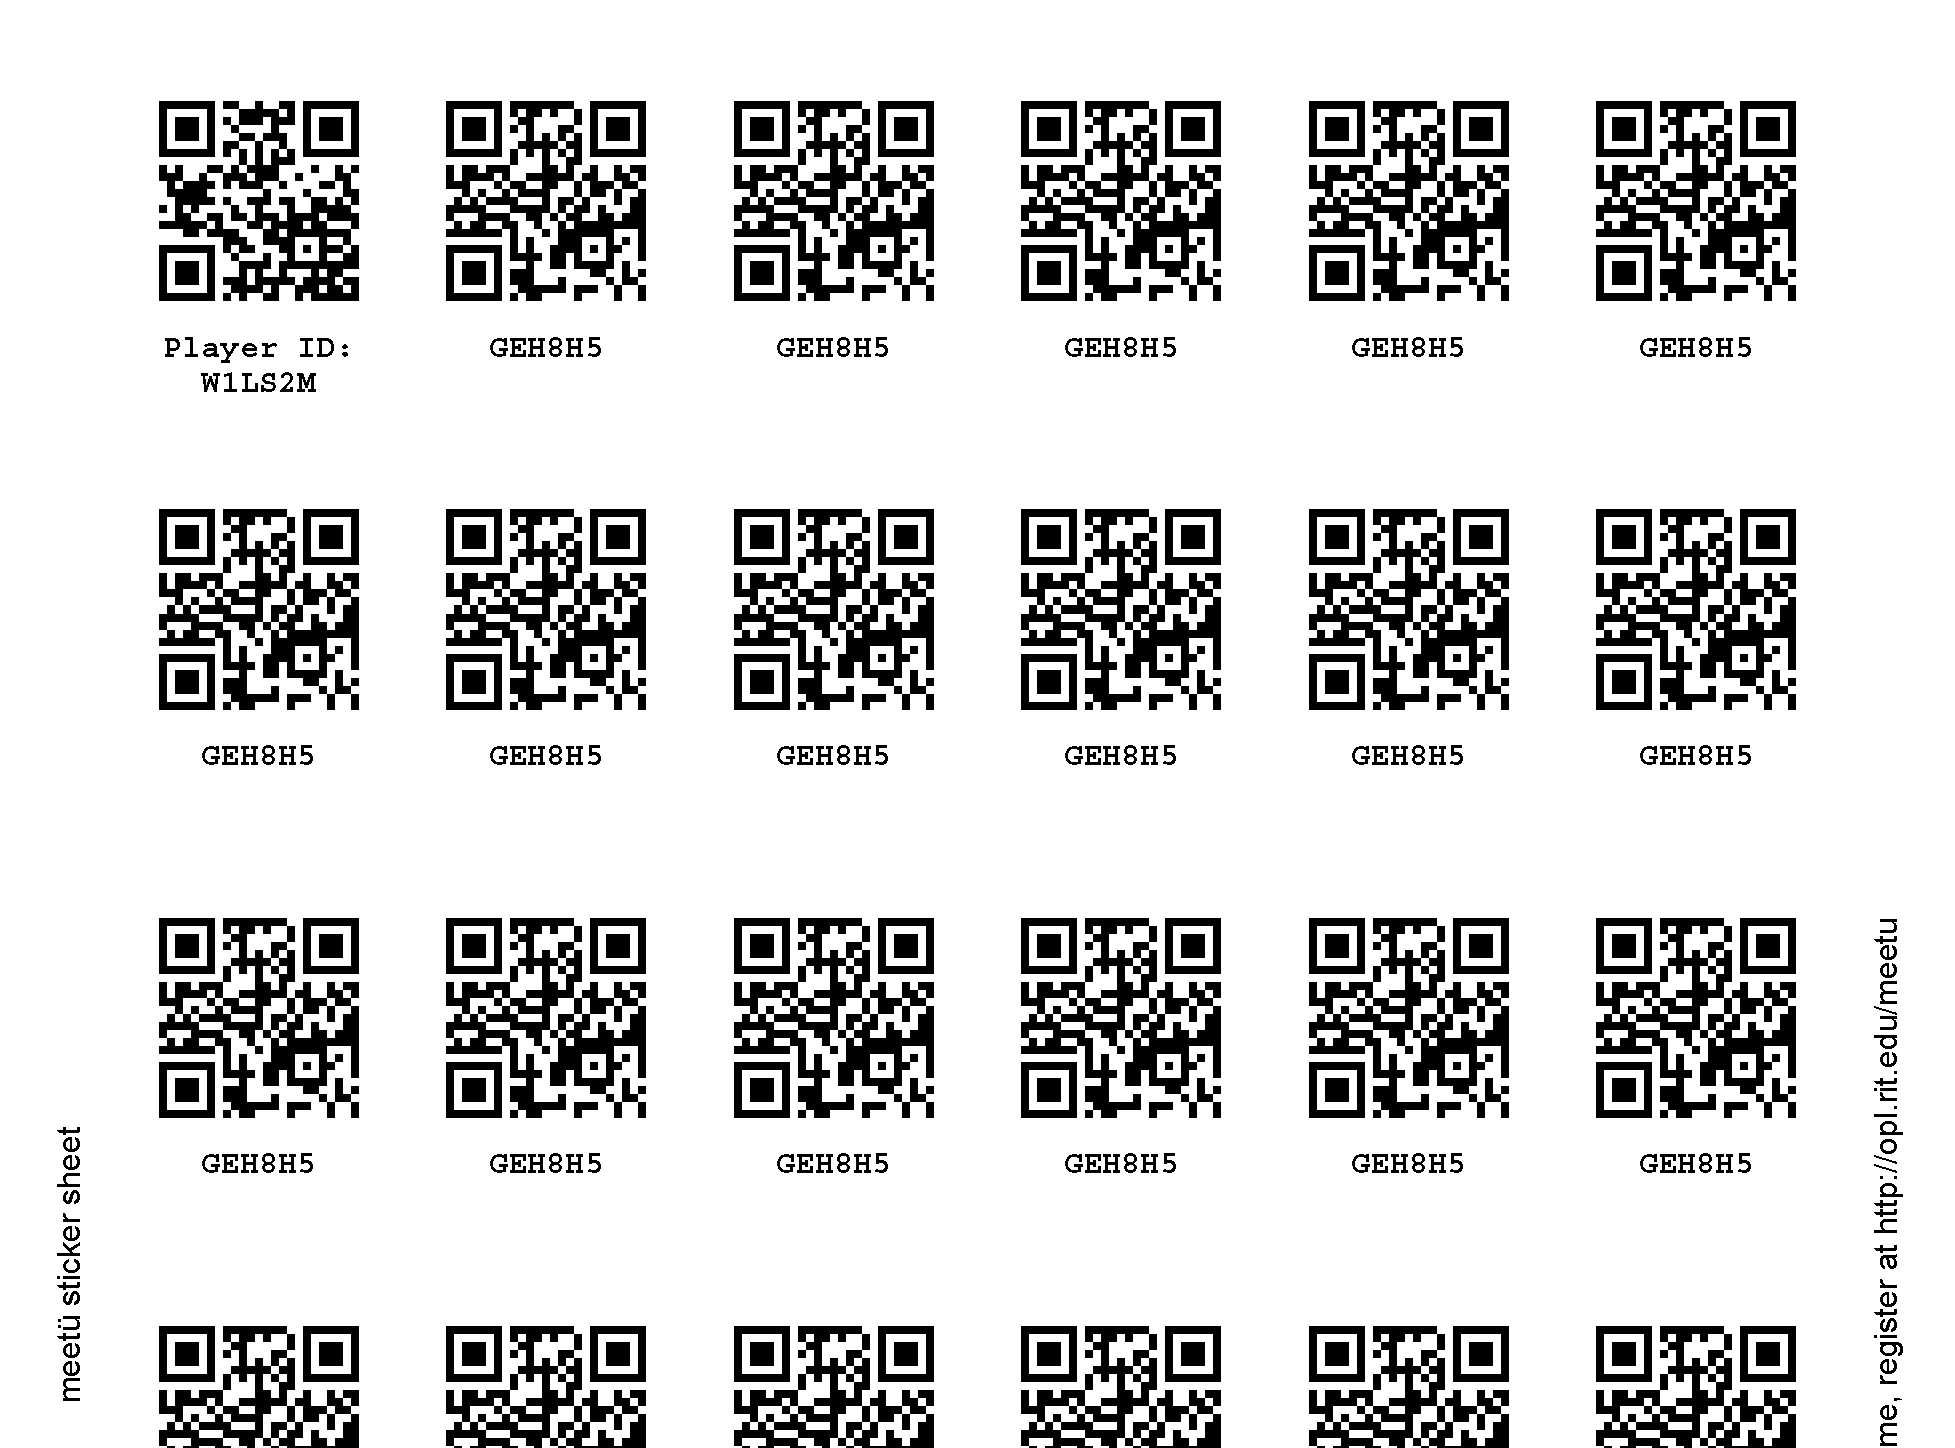 qr Codes Pictures Qr-code Pdf Sticker Sheets is